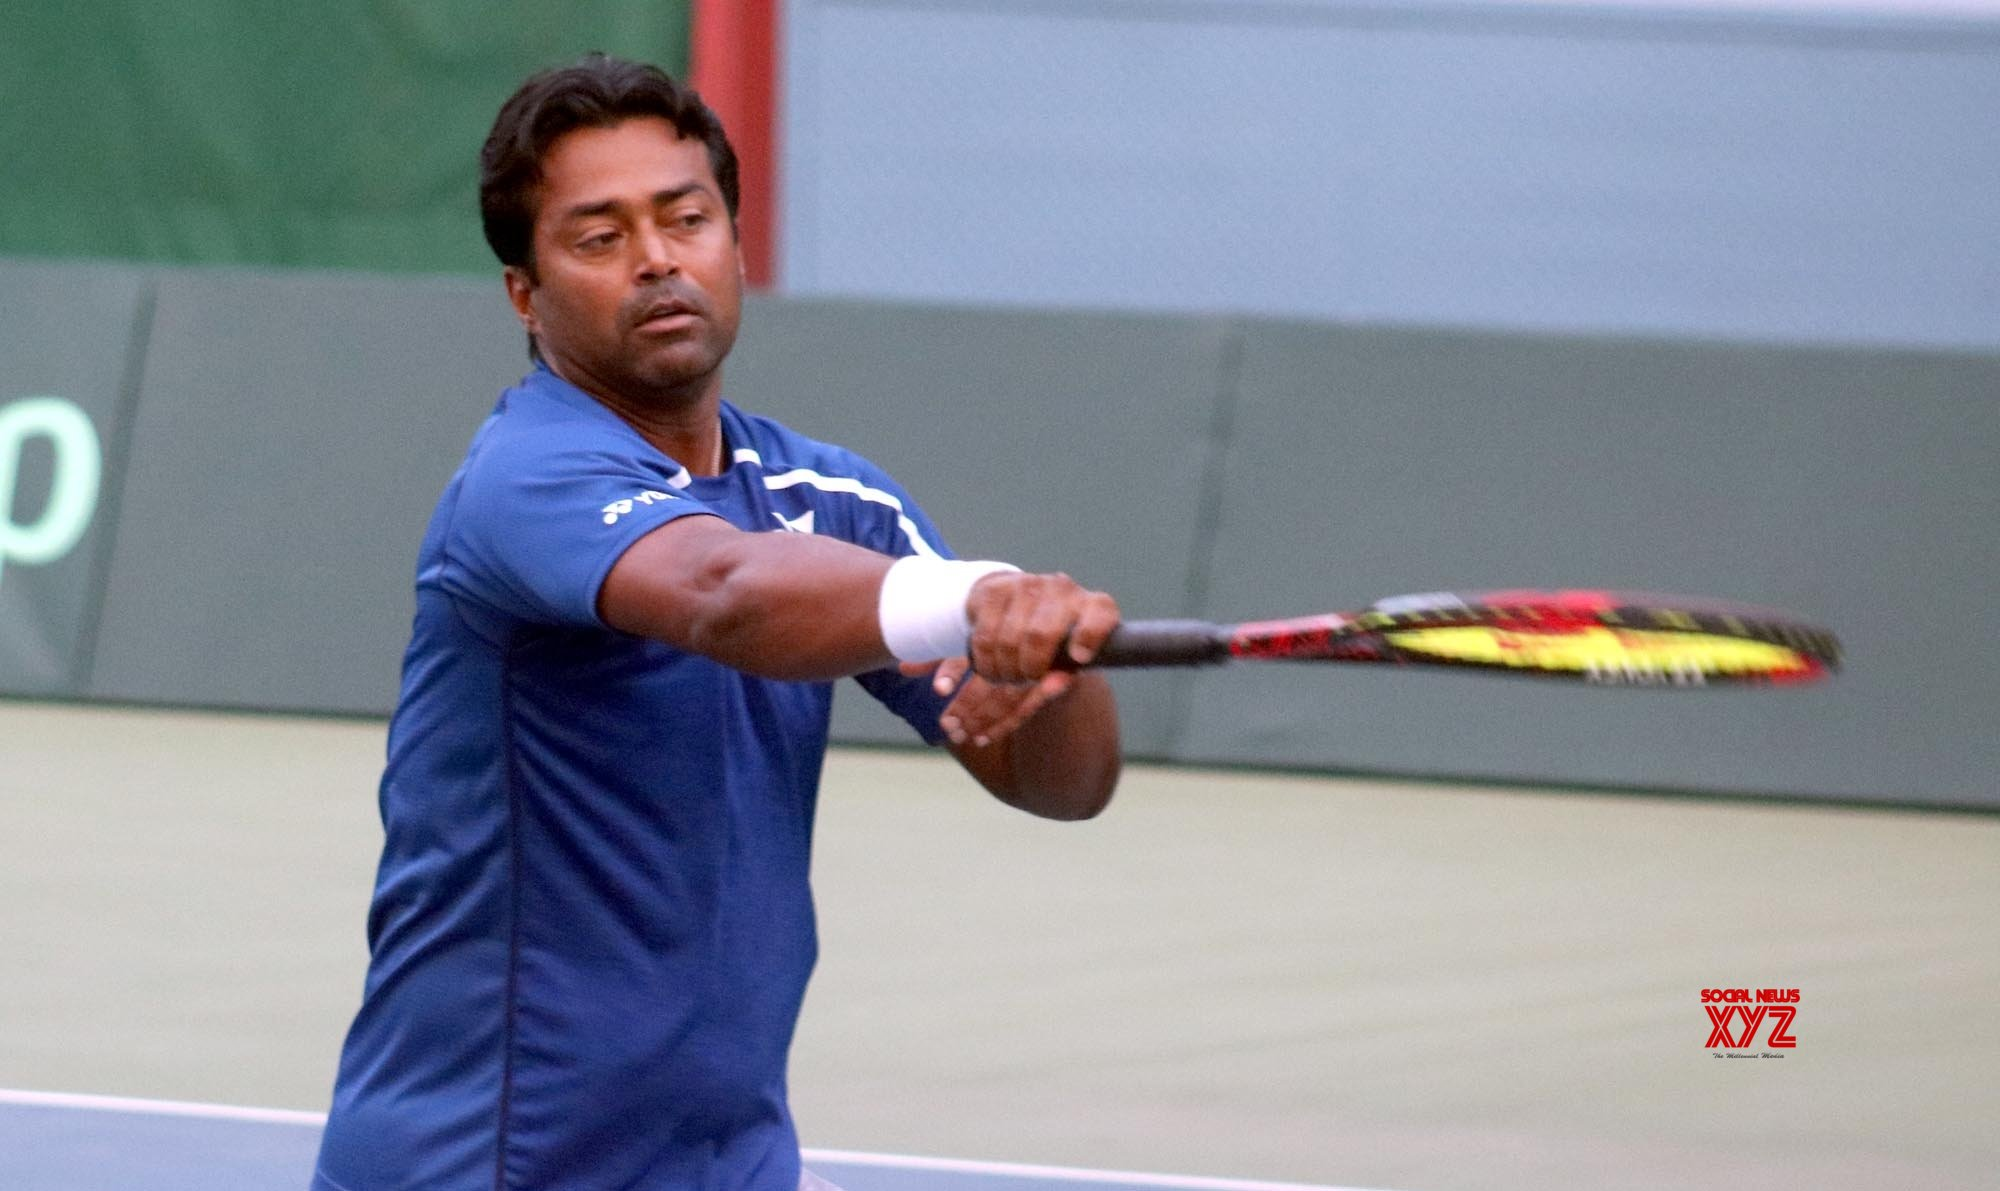 Bengaluru Open: Leander Paes in doubles final